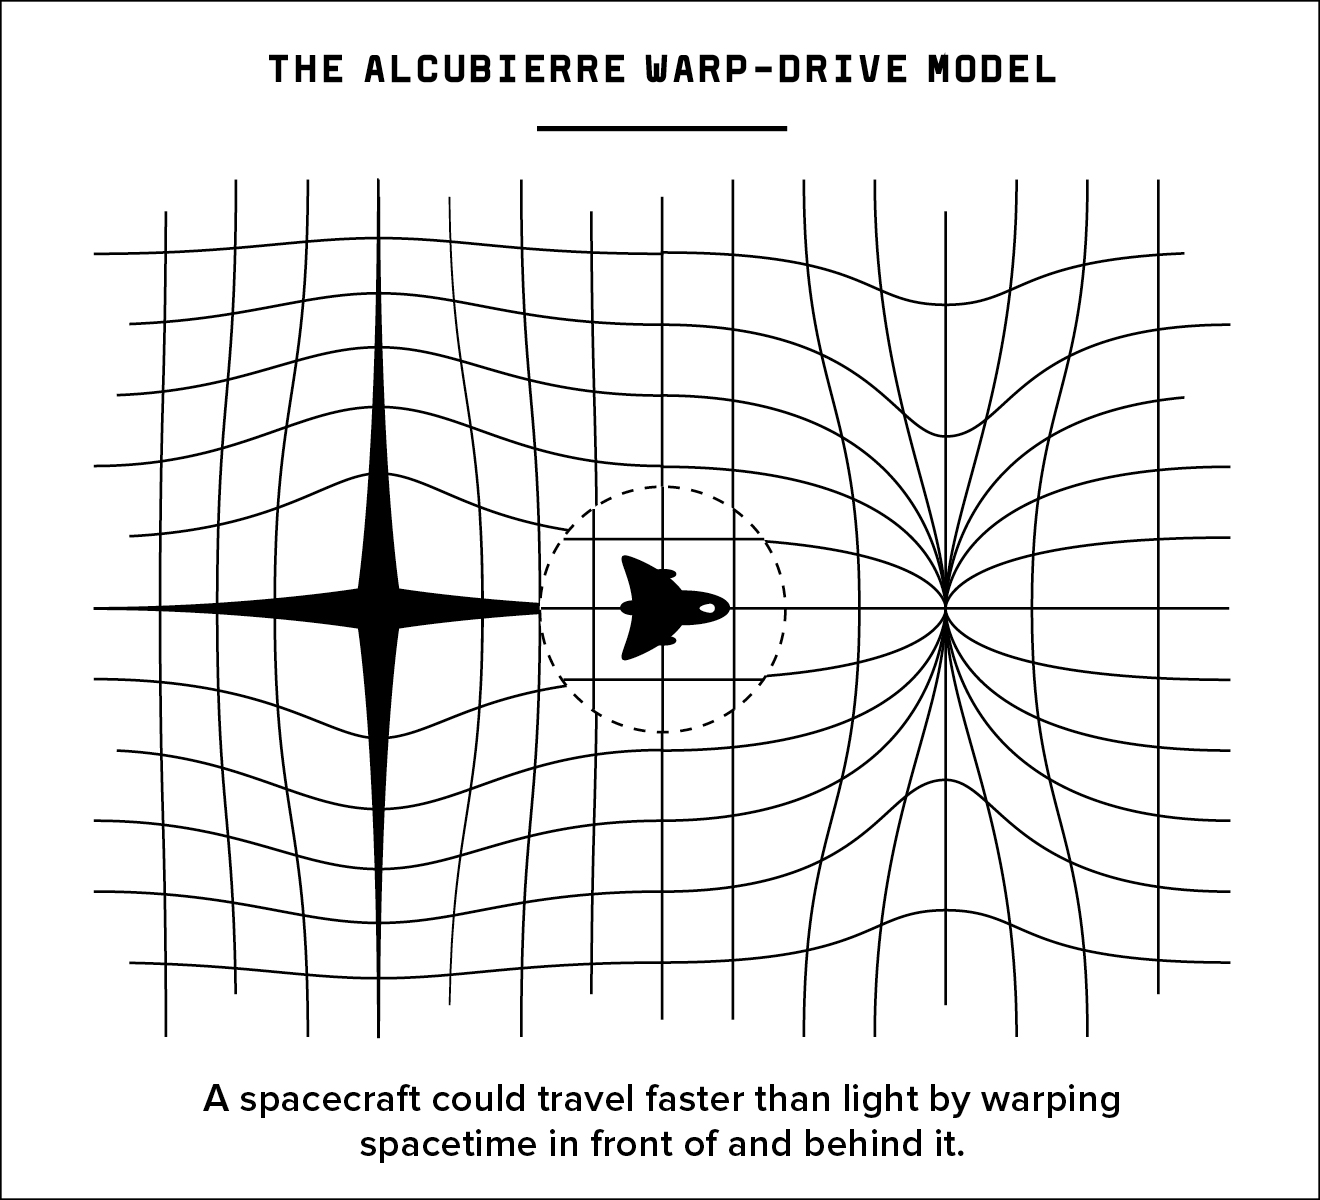 THE ALCUBIERRE WARP-DRIVE MODEL